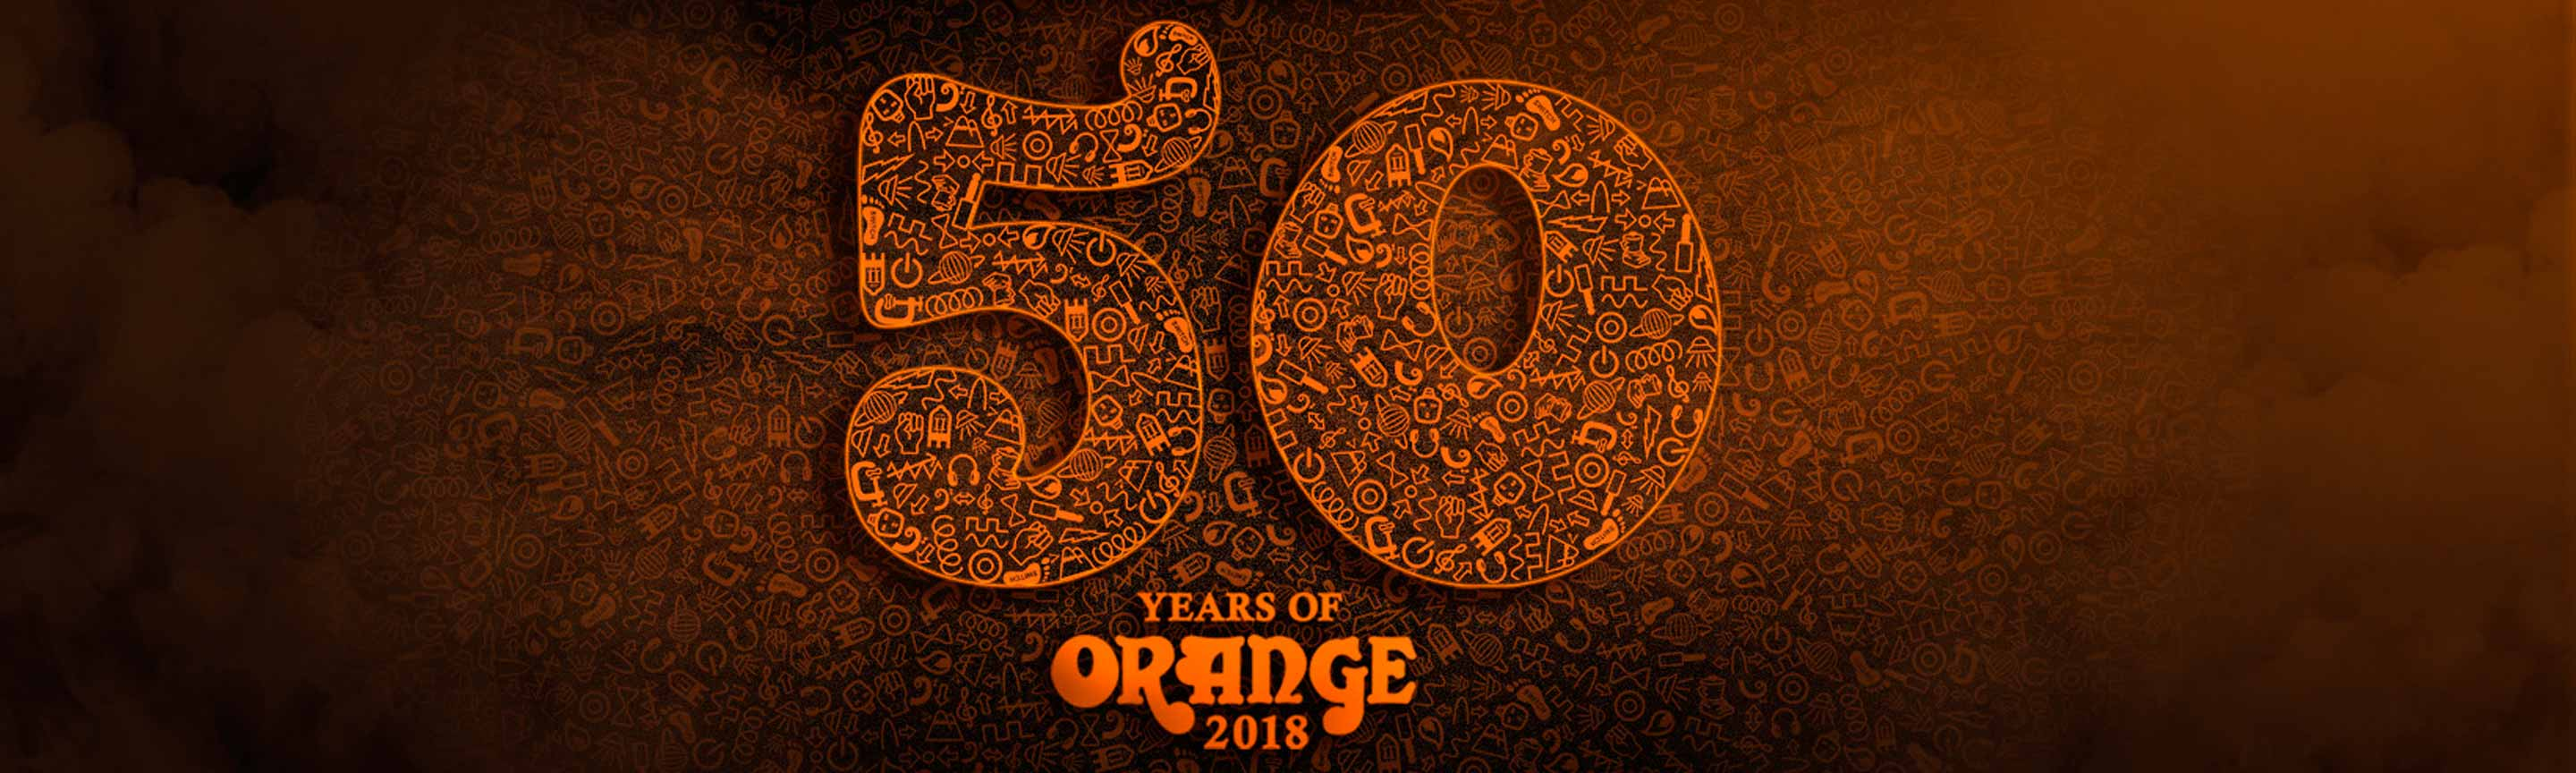 50 Jahre Orange Amps